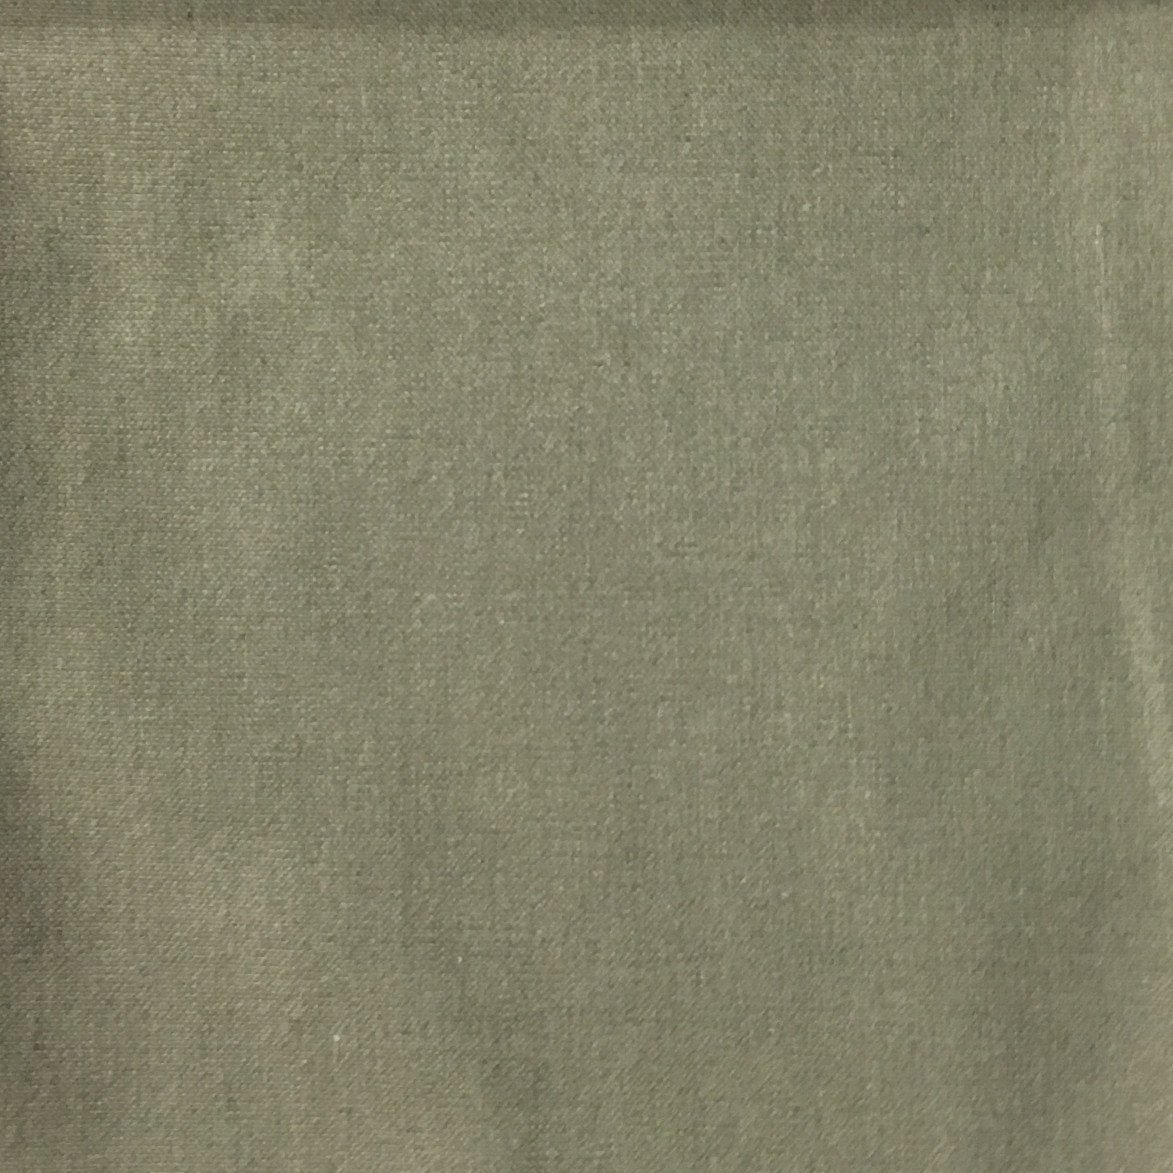 Aston cotton polyester blend upholstery fabric by the yard for Outdoor fabric by the yard